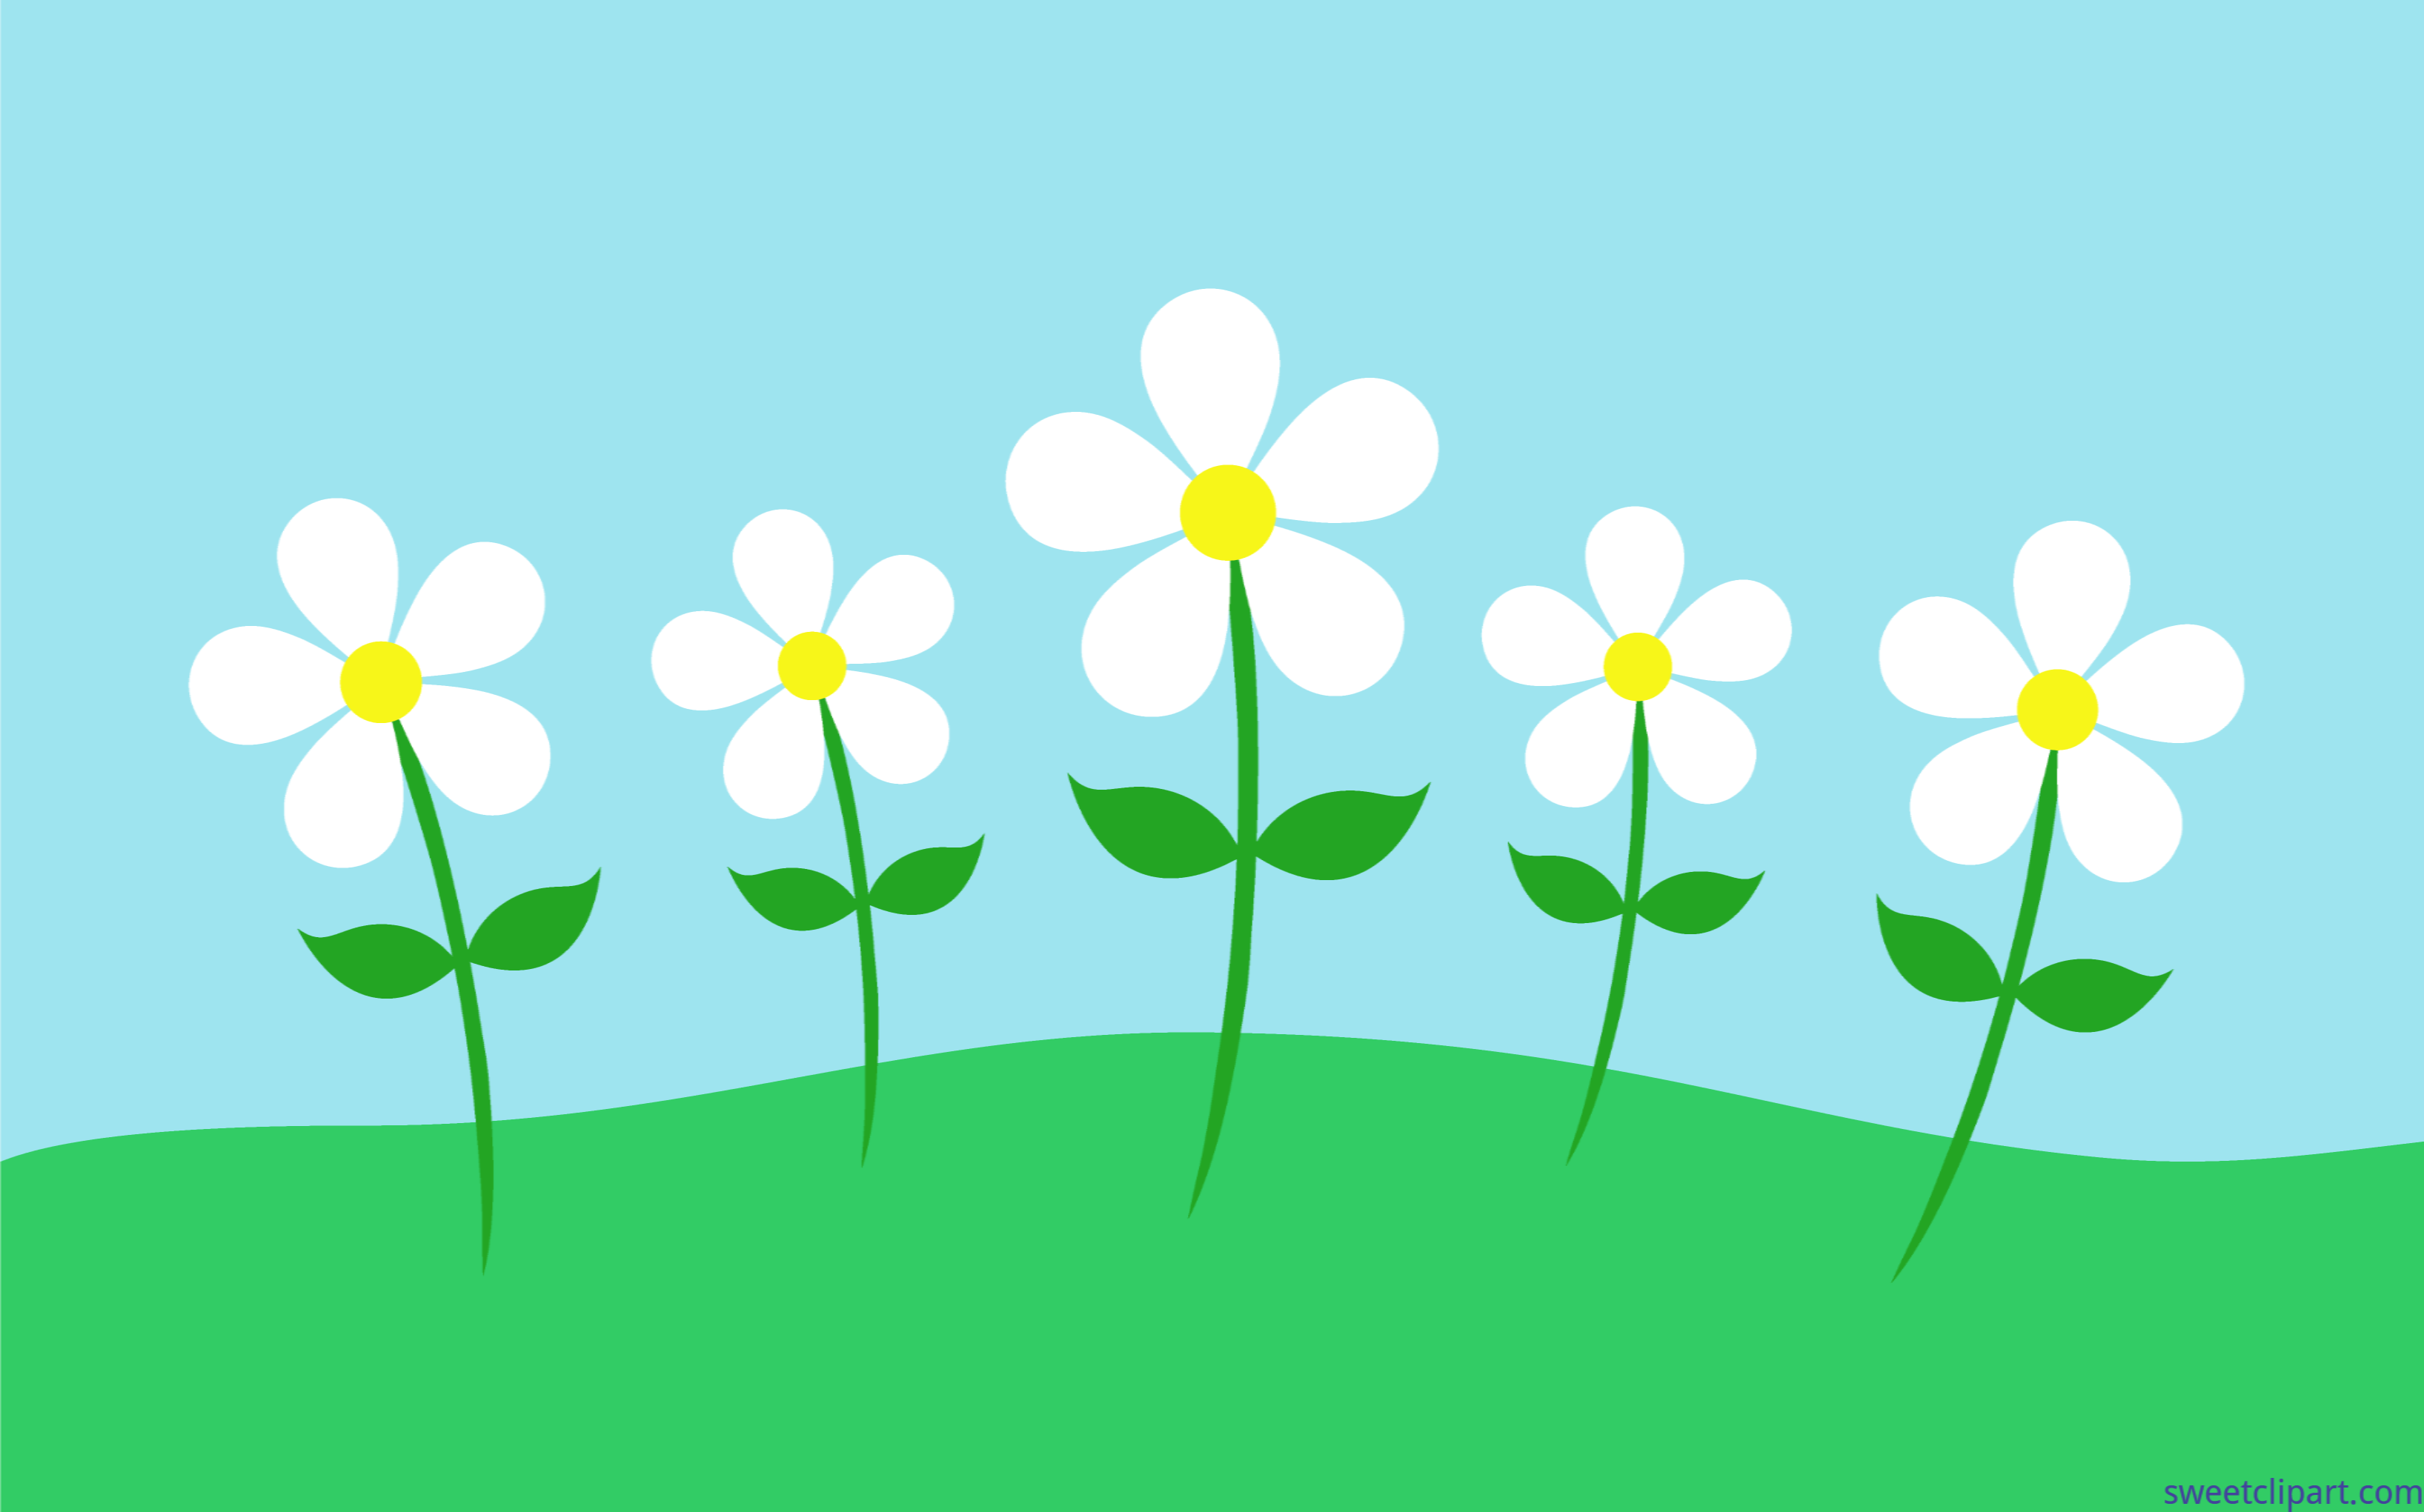 Daisy clipart landscape. Spring flowers daisies clip